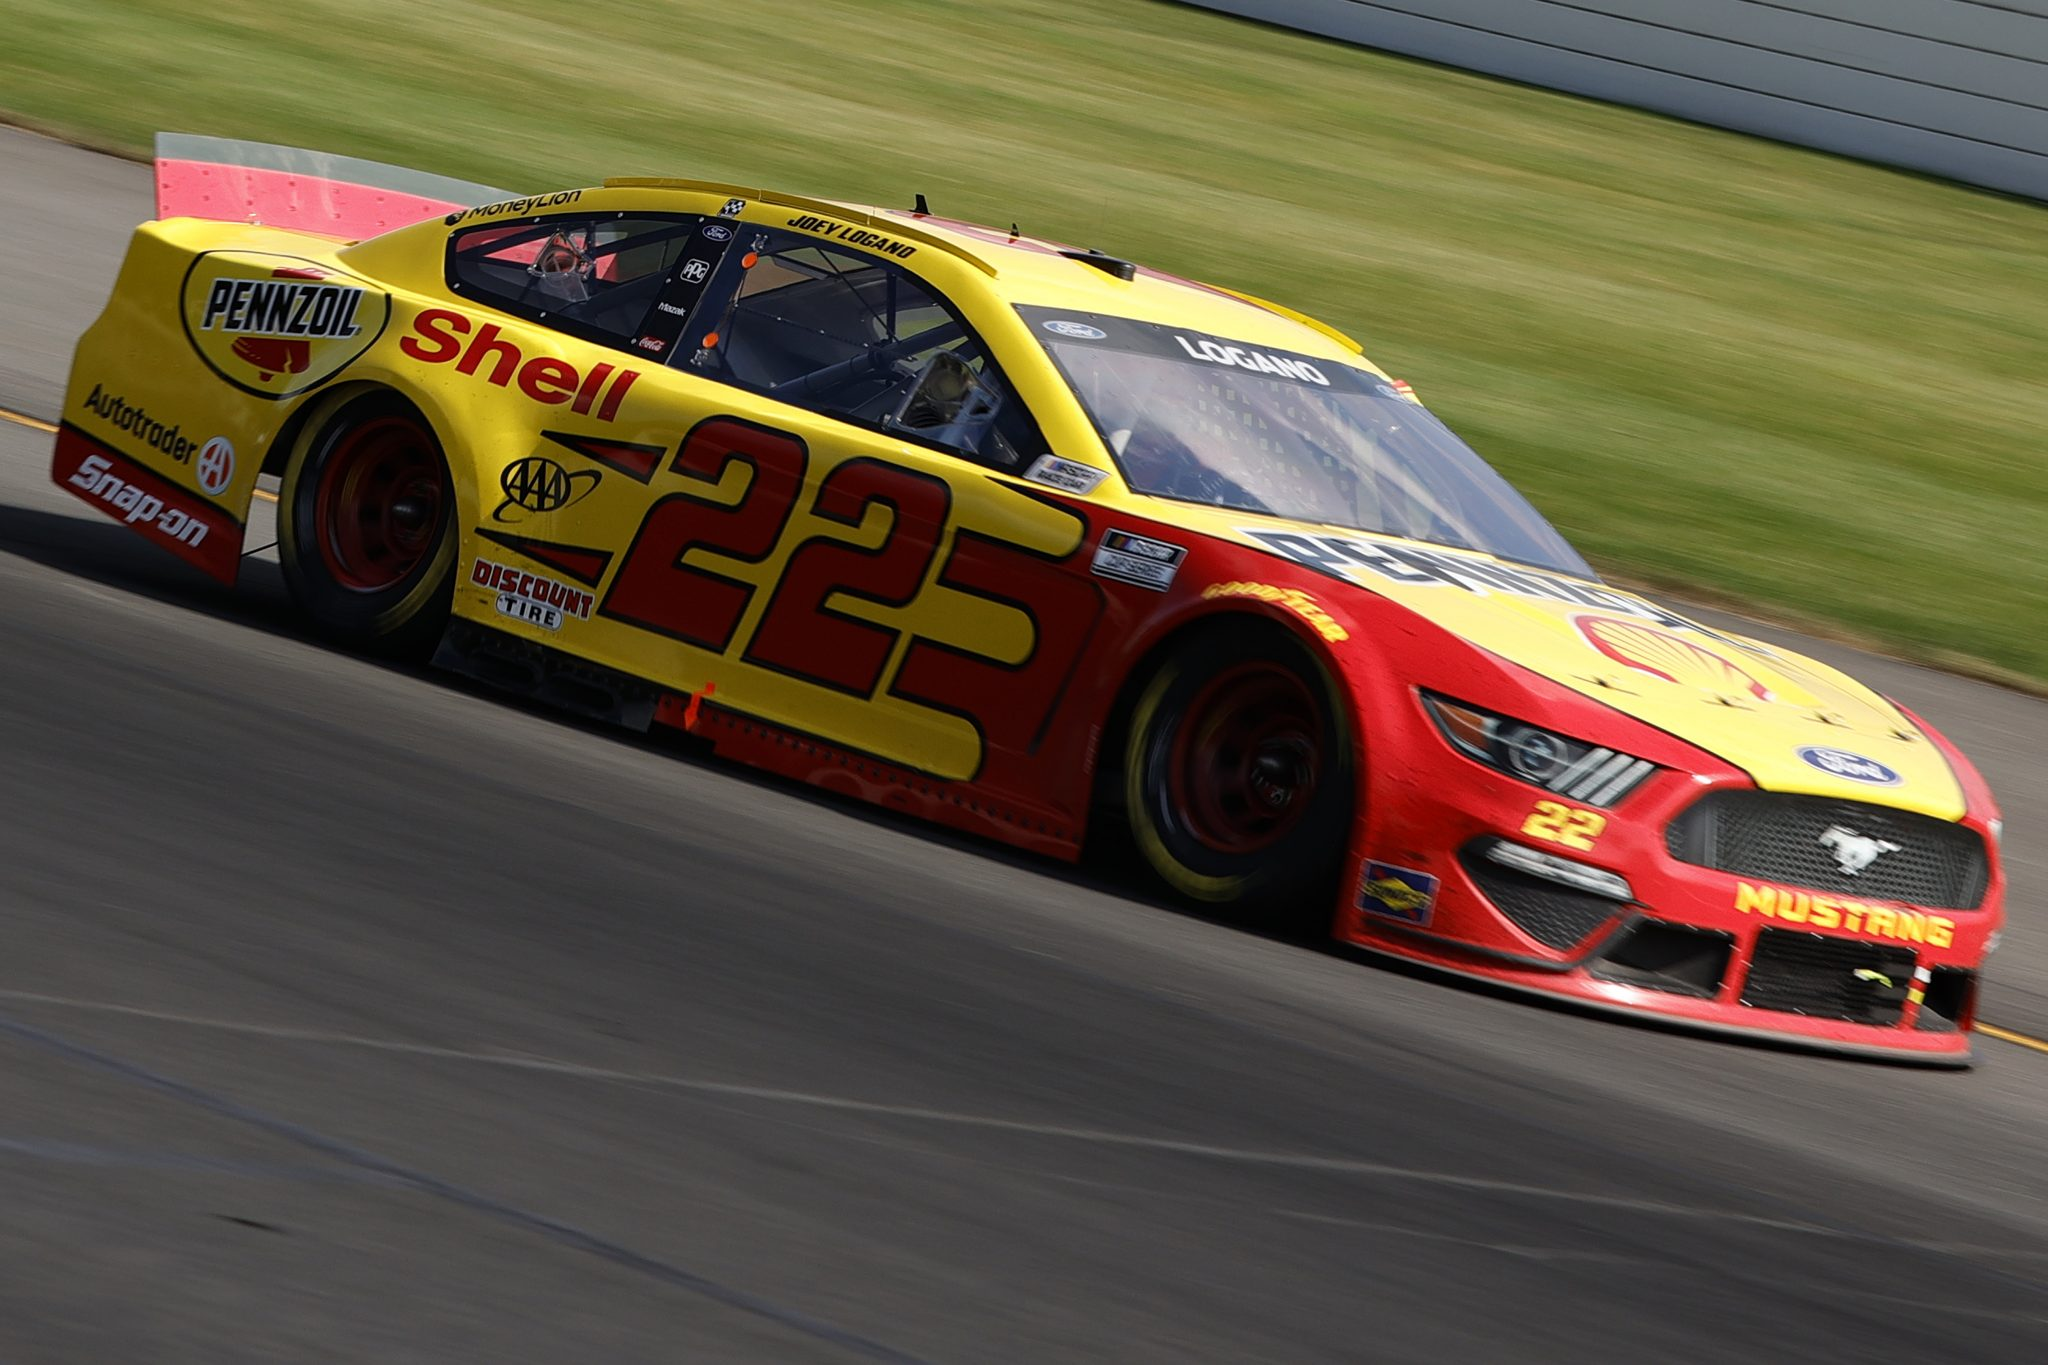 LONG POND, PENNSYLVANIA - JUNE 27: Joey Logano, driver of the #22 Shell Pennzoil Ford, drives during the NASCAR Cup Series Explore the Pocono Mountains 350 at Pocono Raceway on June 27, 2021 in Long Pond, Pennsylvania. (Photo by Tim Nwachukwu/Getty Images) | Getty Images